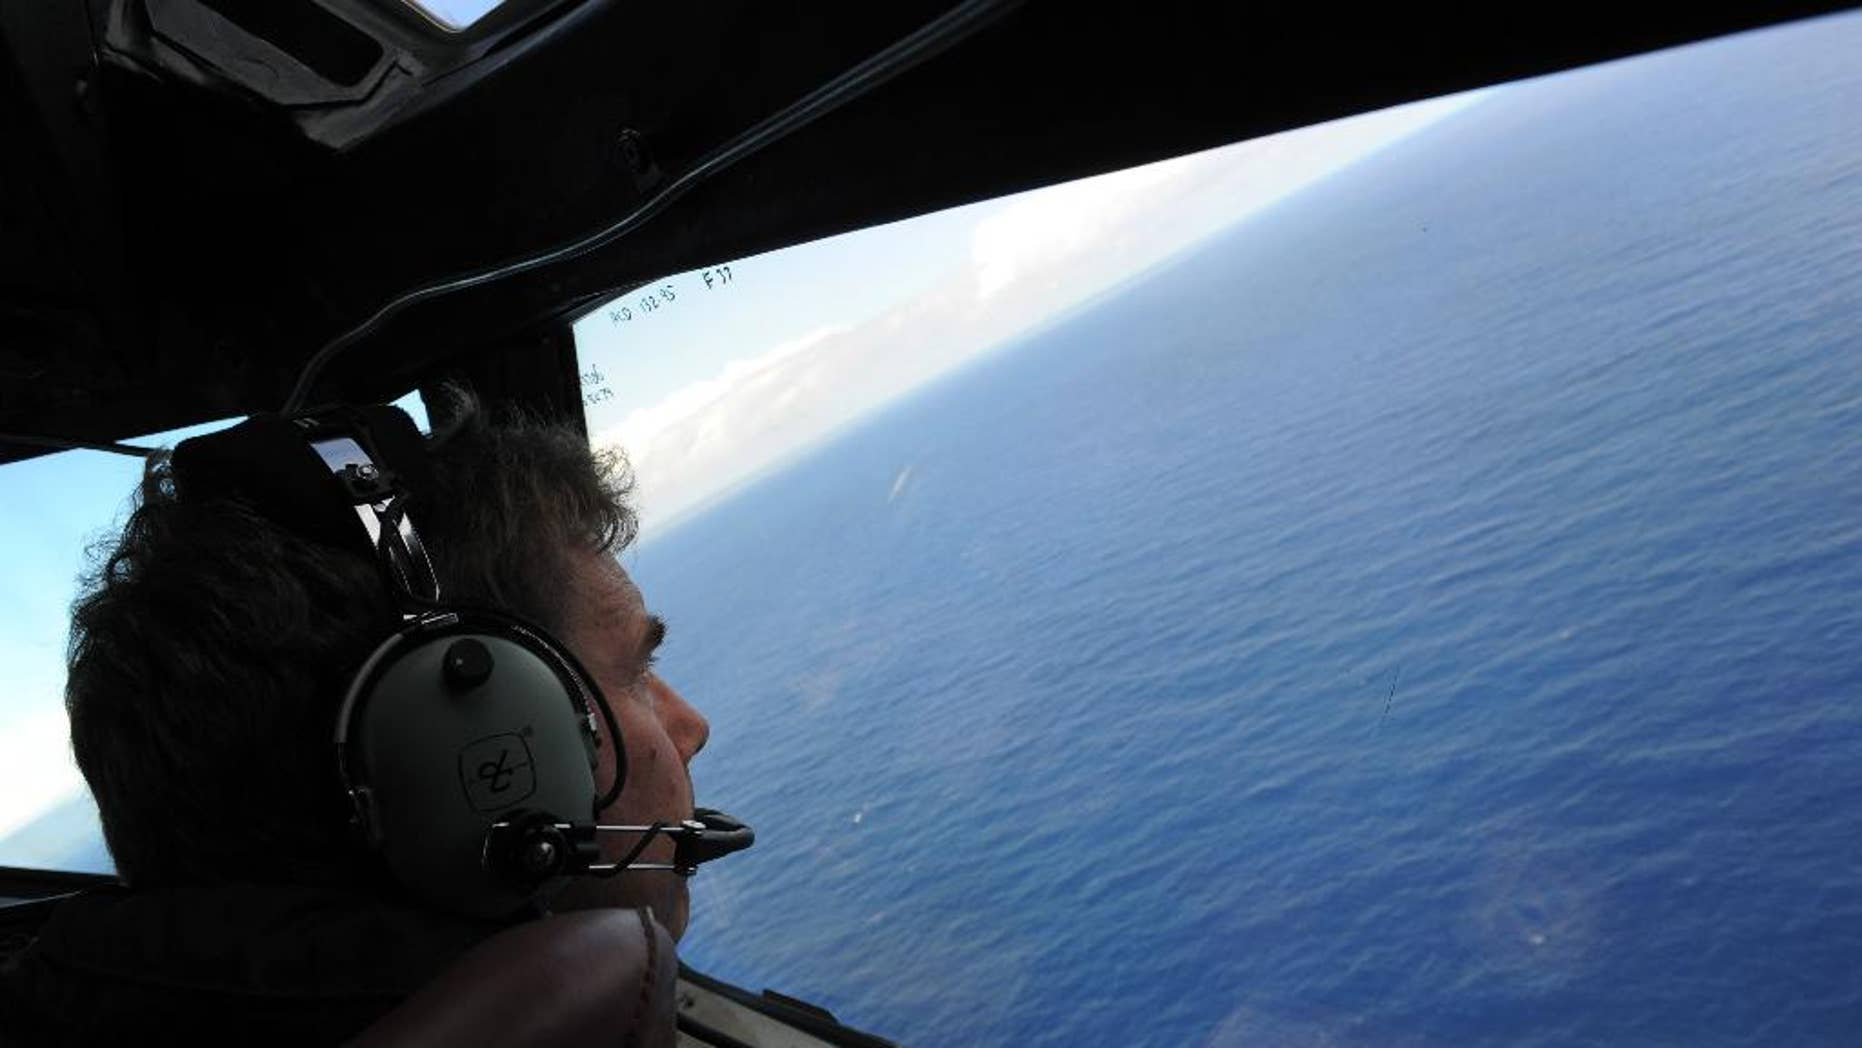 FILE - In this April 13, 2014, file photo taken from the Royal New Zealand air force (RNZAF) P-3K2-Orion aircraft, co-pilot Squadron Leader Brett McKenzie looks out of a window while searching for debris from missing Malaysia Airlines Flight 370, in the Indian Ocean off the coast of western Australia.  Even with the recent discovery of a possible wing fragment from the missing airplane on Wednesday, July 29, 2015,  on a remote island in the Indian Ocean, tracing the route of the debris back across Indian Ocean may prove impossible. (Greg Wood/Pool Photo via AP)